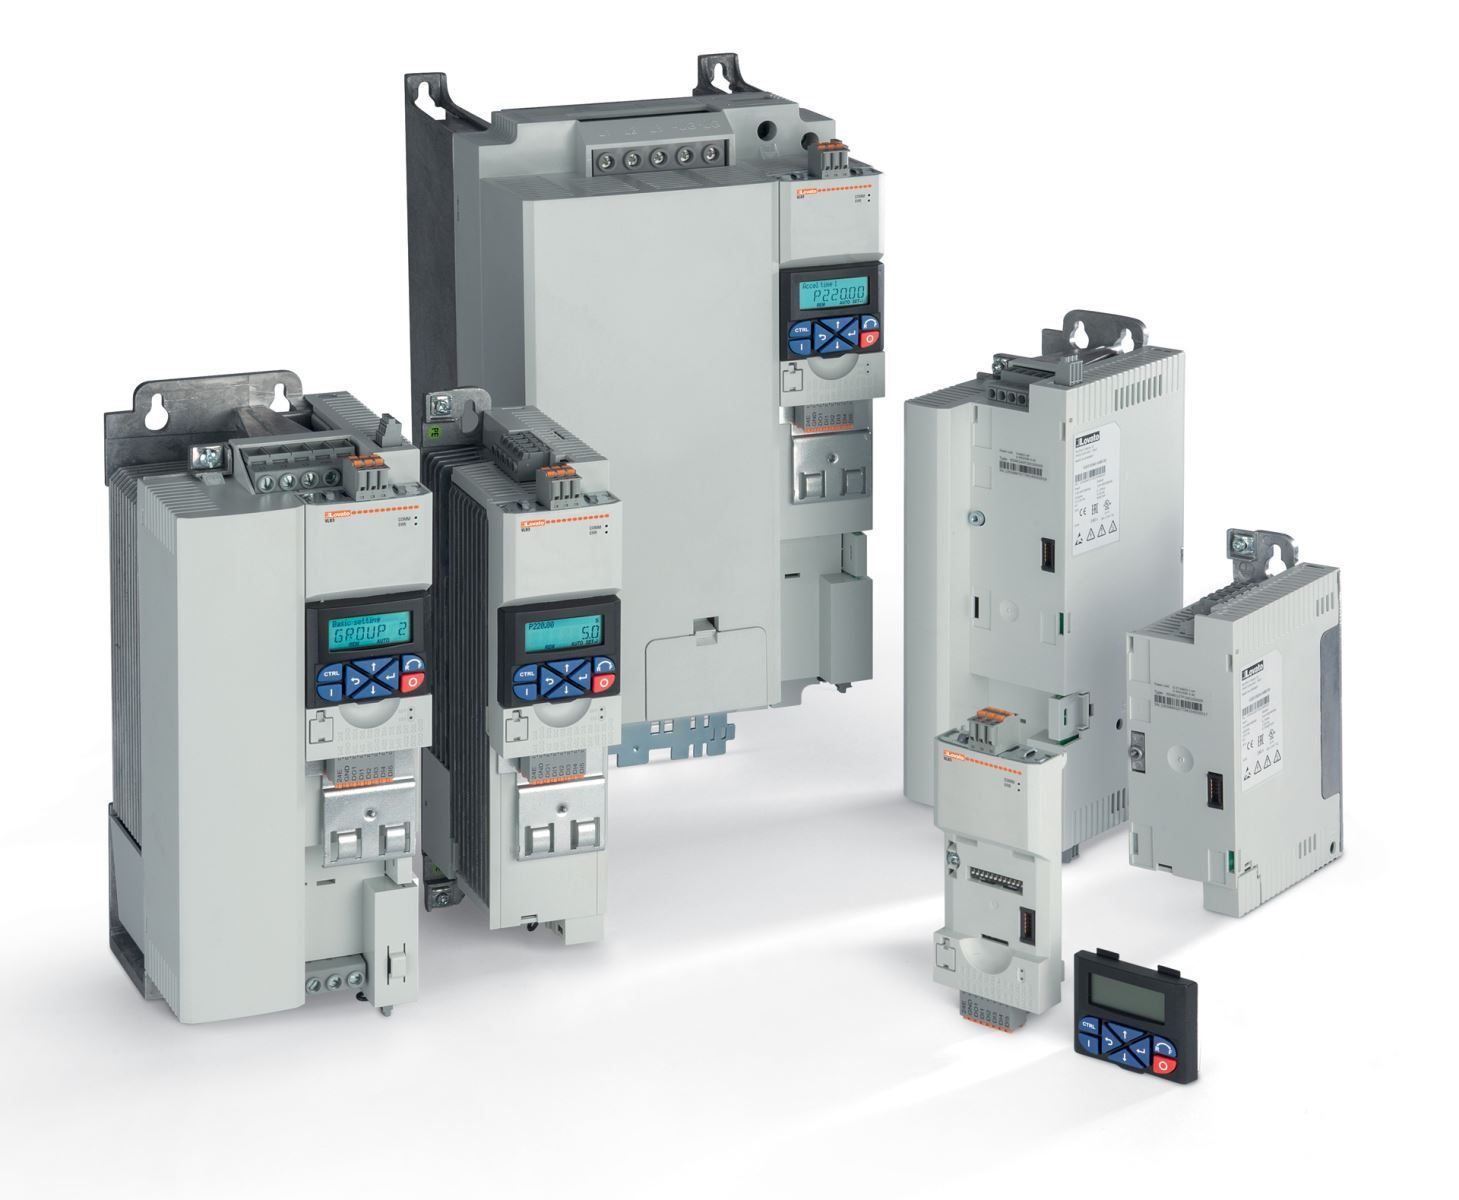 VLB3 variable speed drives